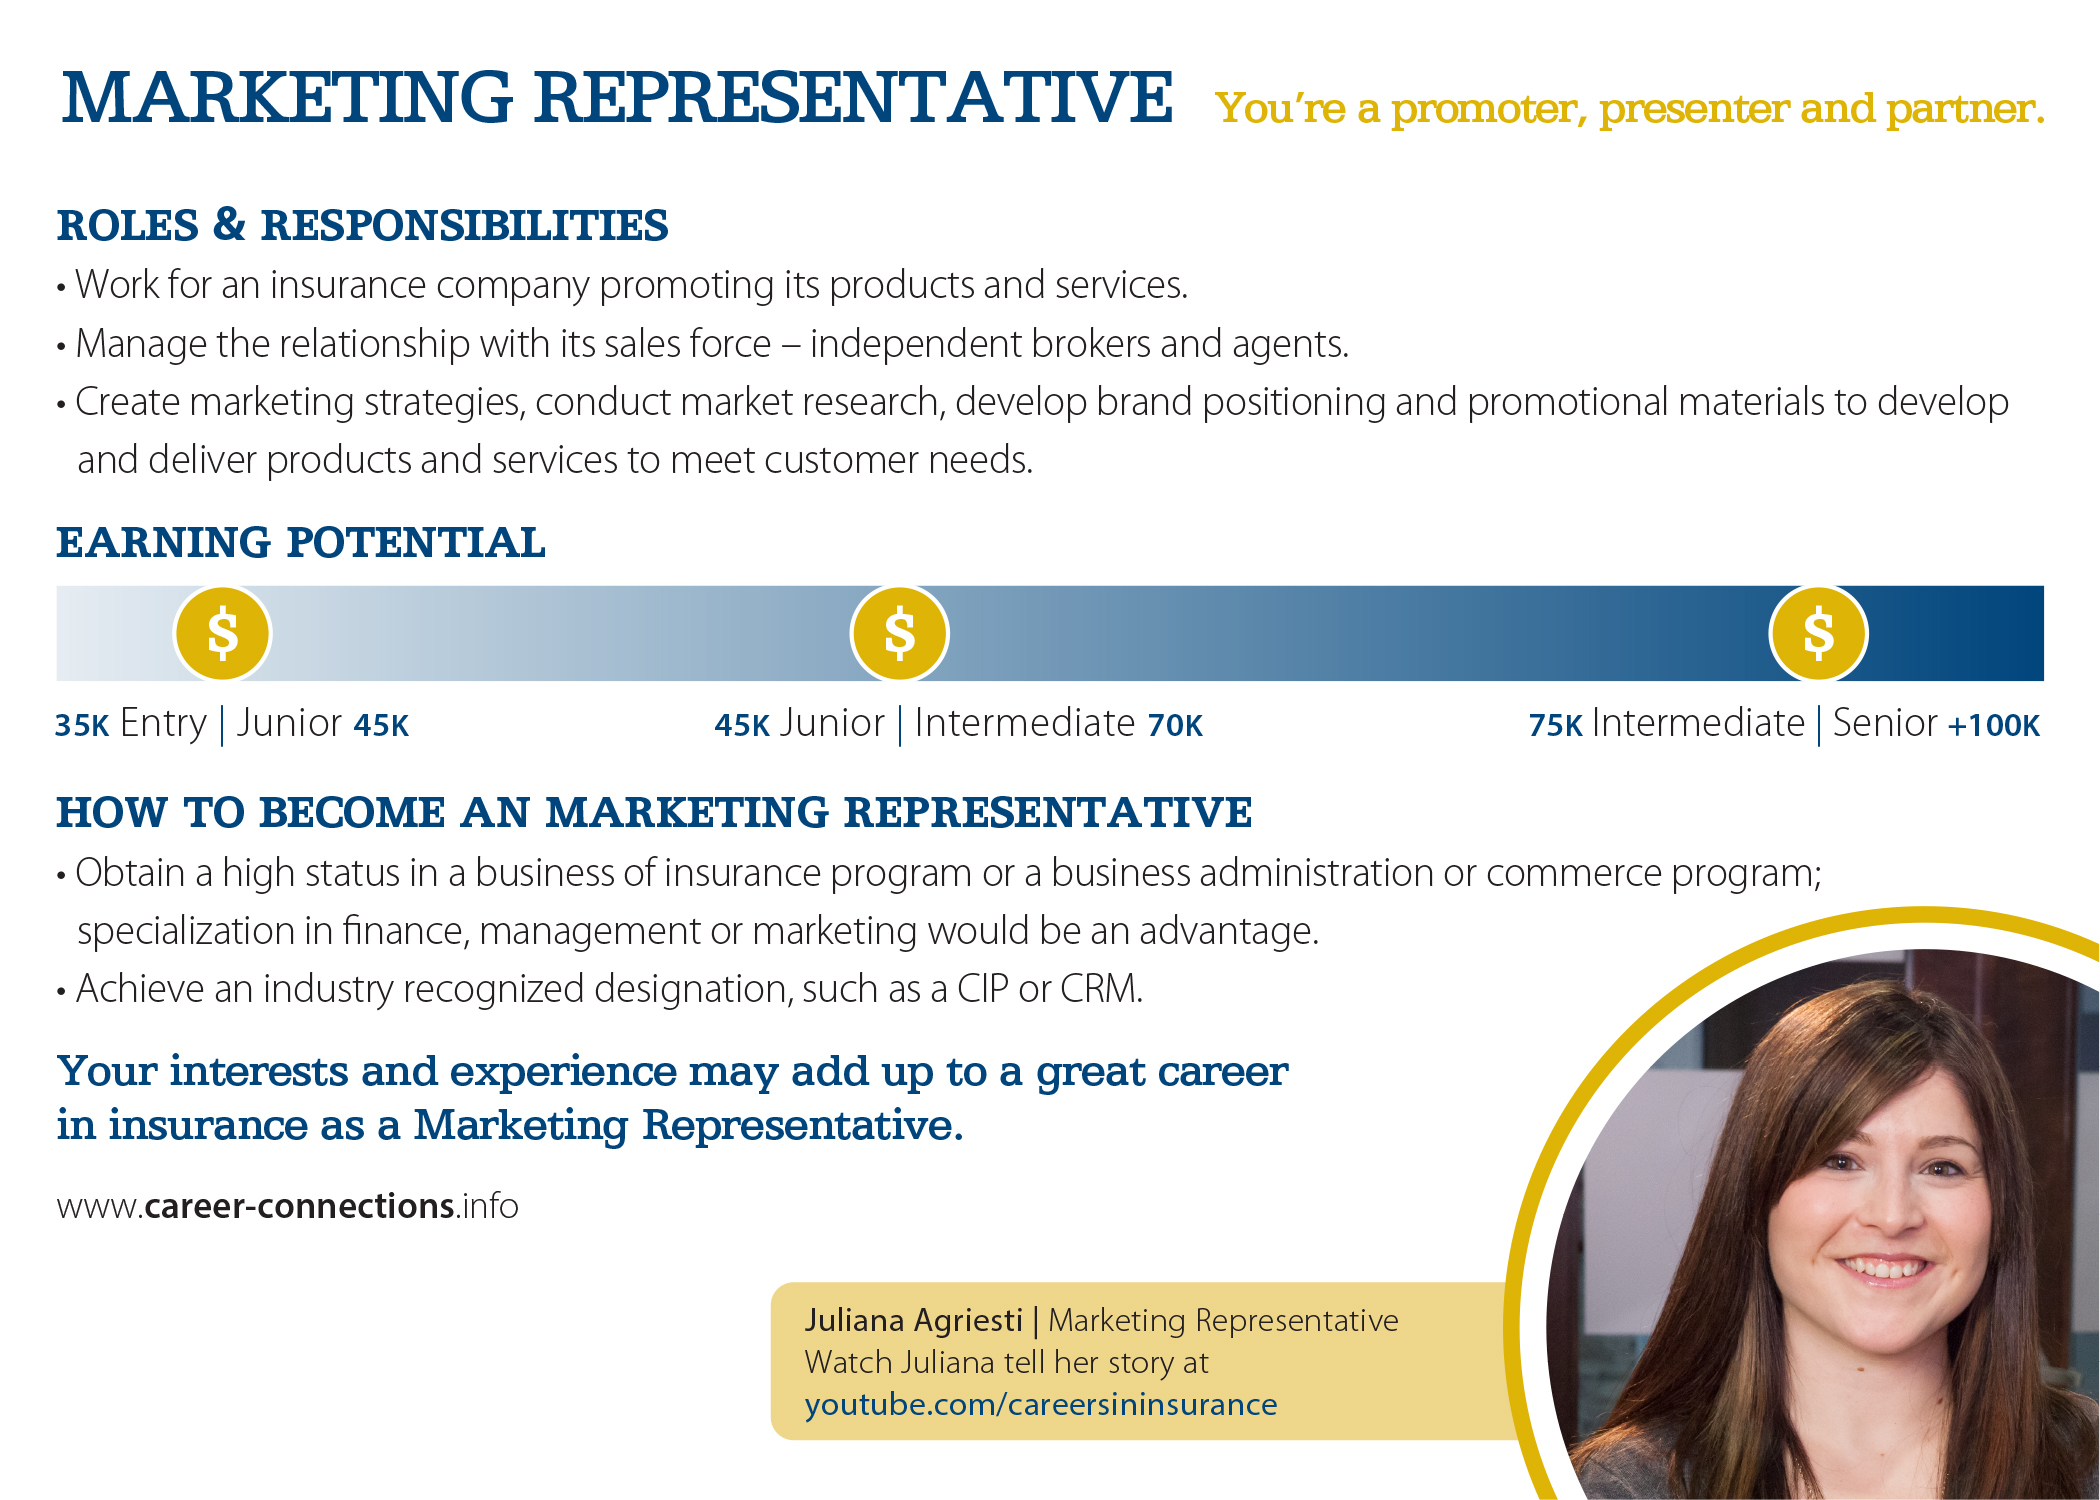 Career Profile of a Marketing Representative